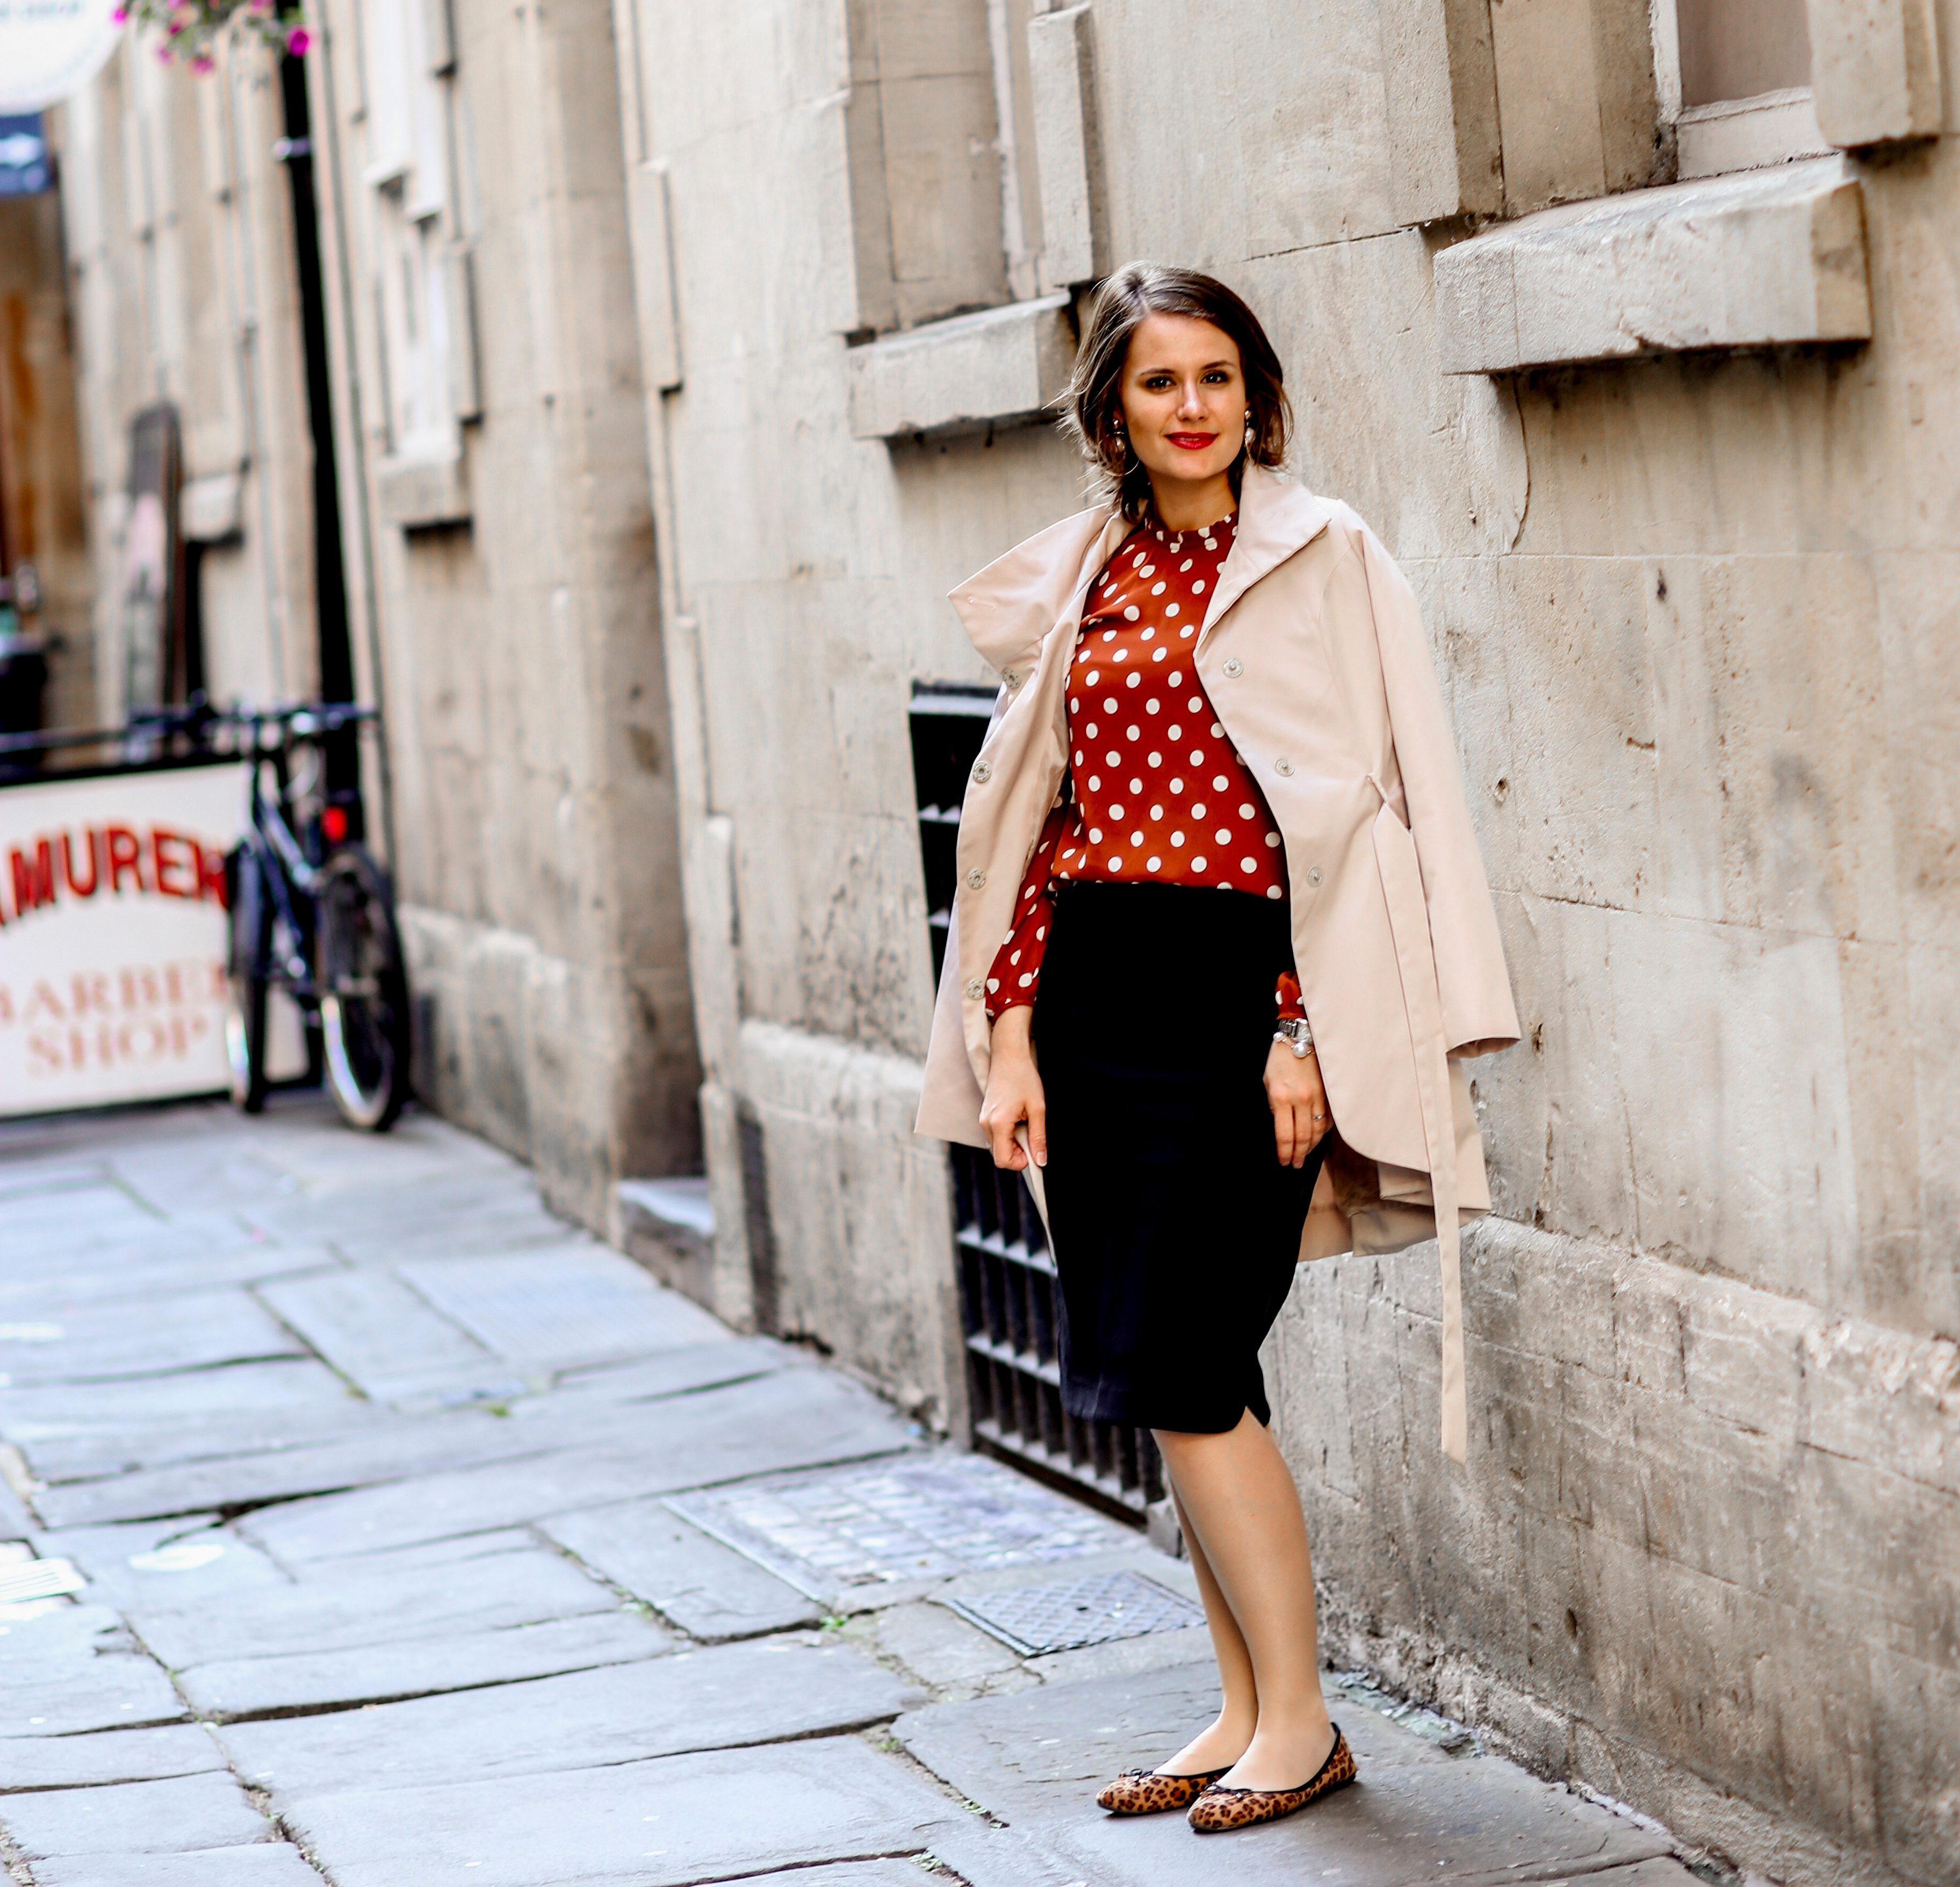 Rust polka dot blouse, black pencil skirt, beige trench coat and leopard print shoes